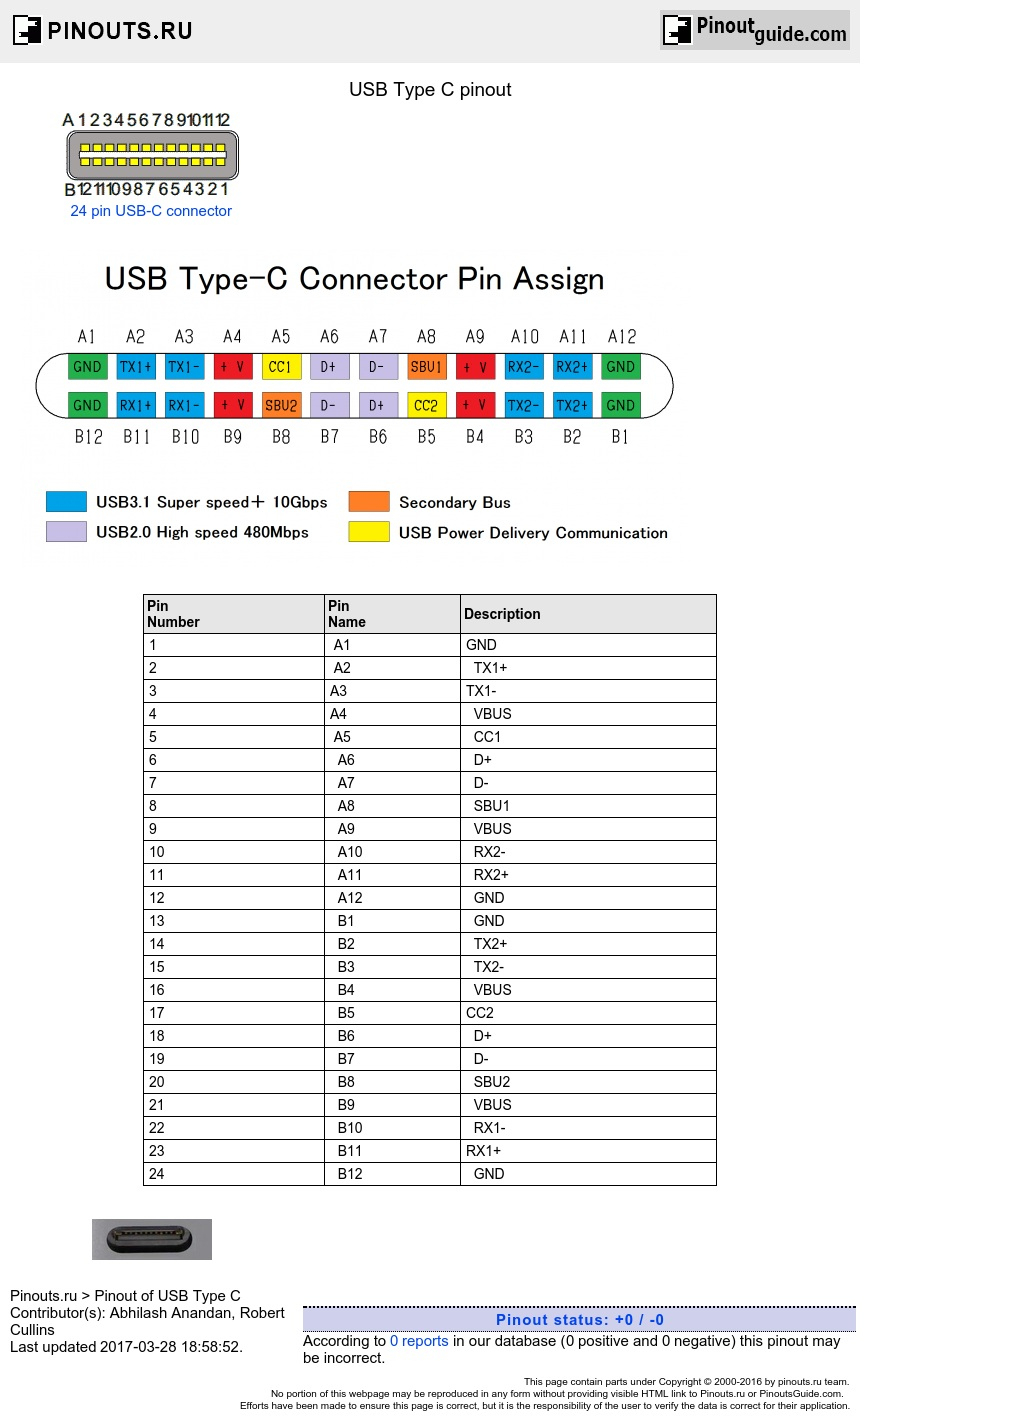 Usb Type C Pinout Diagram @ Pinoutguide - Usb 3.1 Wiring Diagram